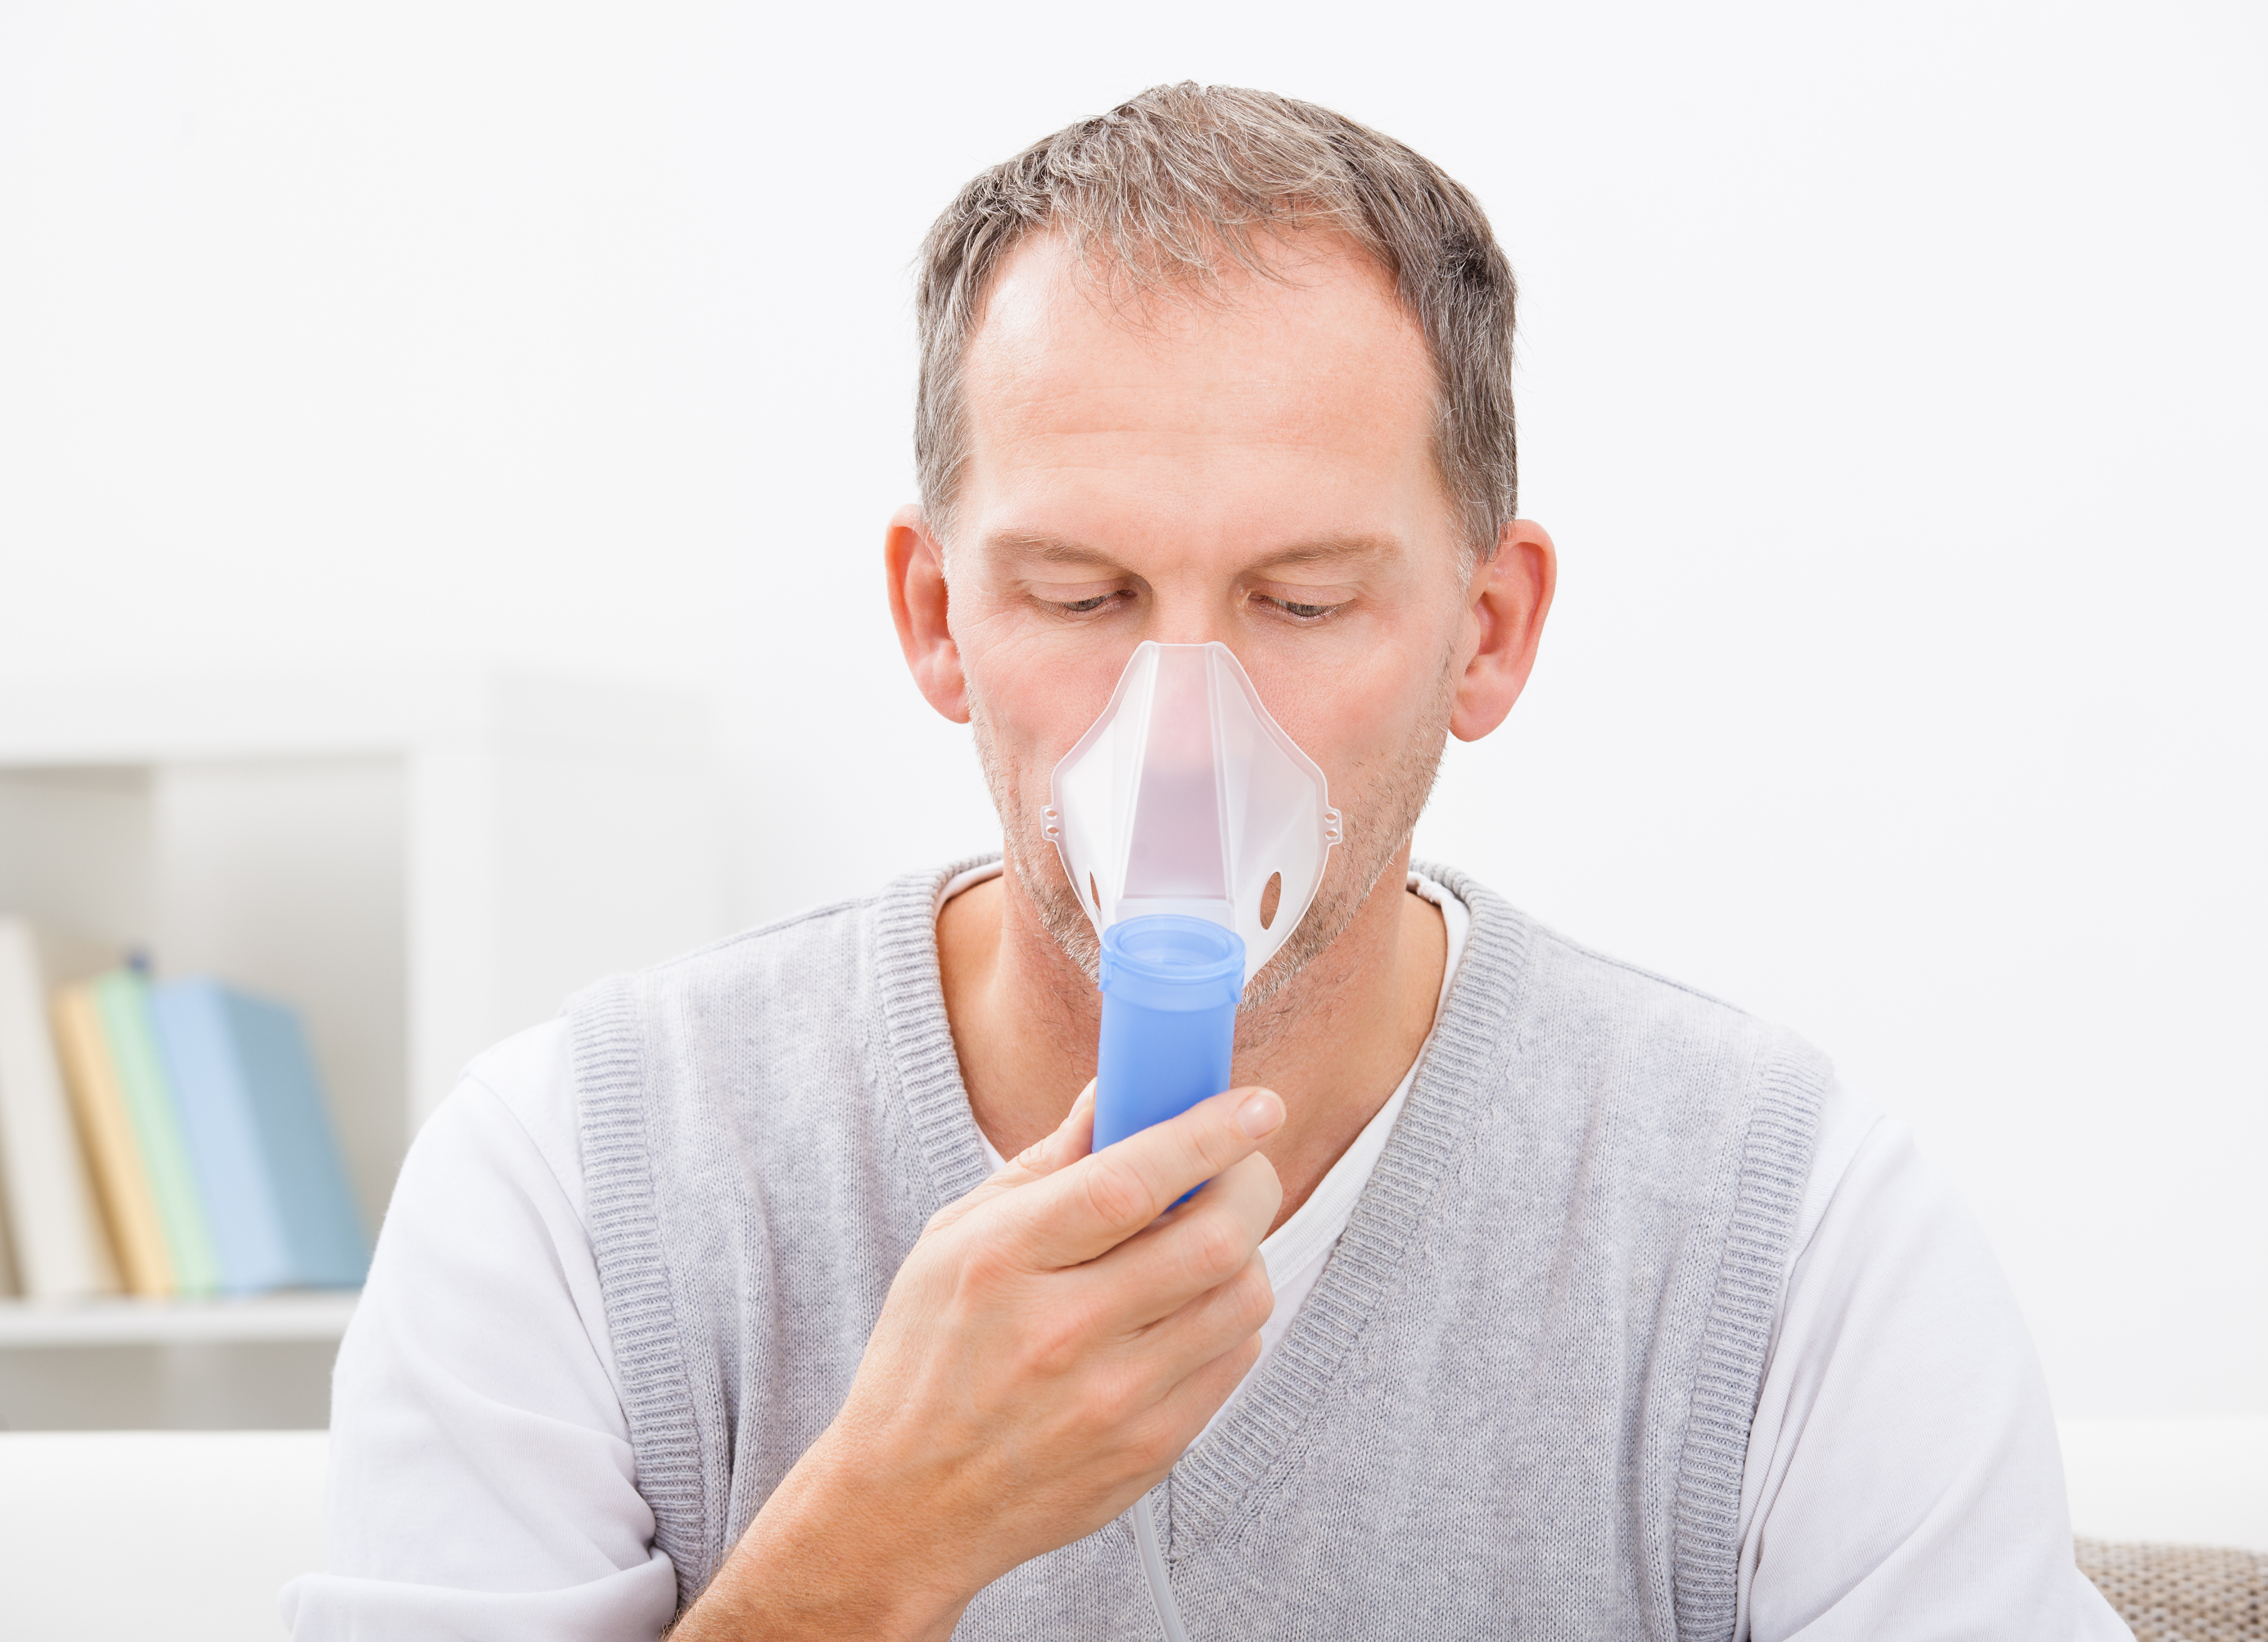 Gene therapy for cystic fibrosis shows encouraging results